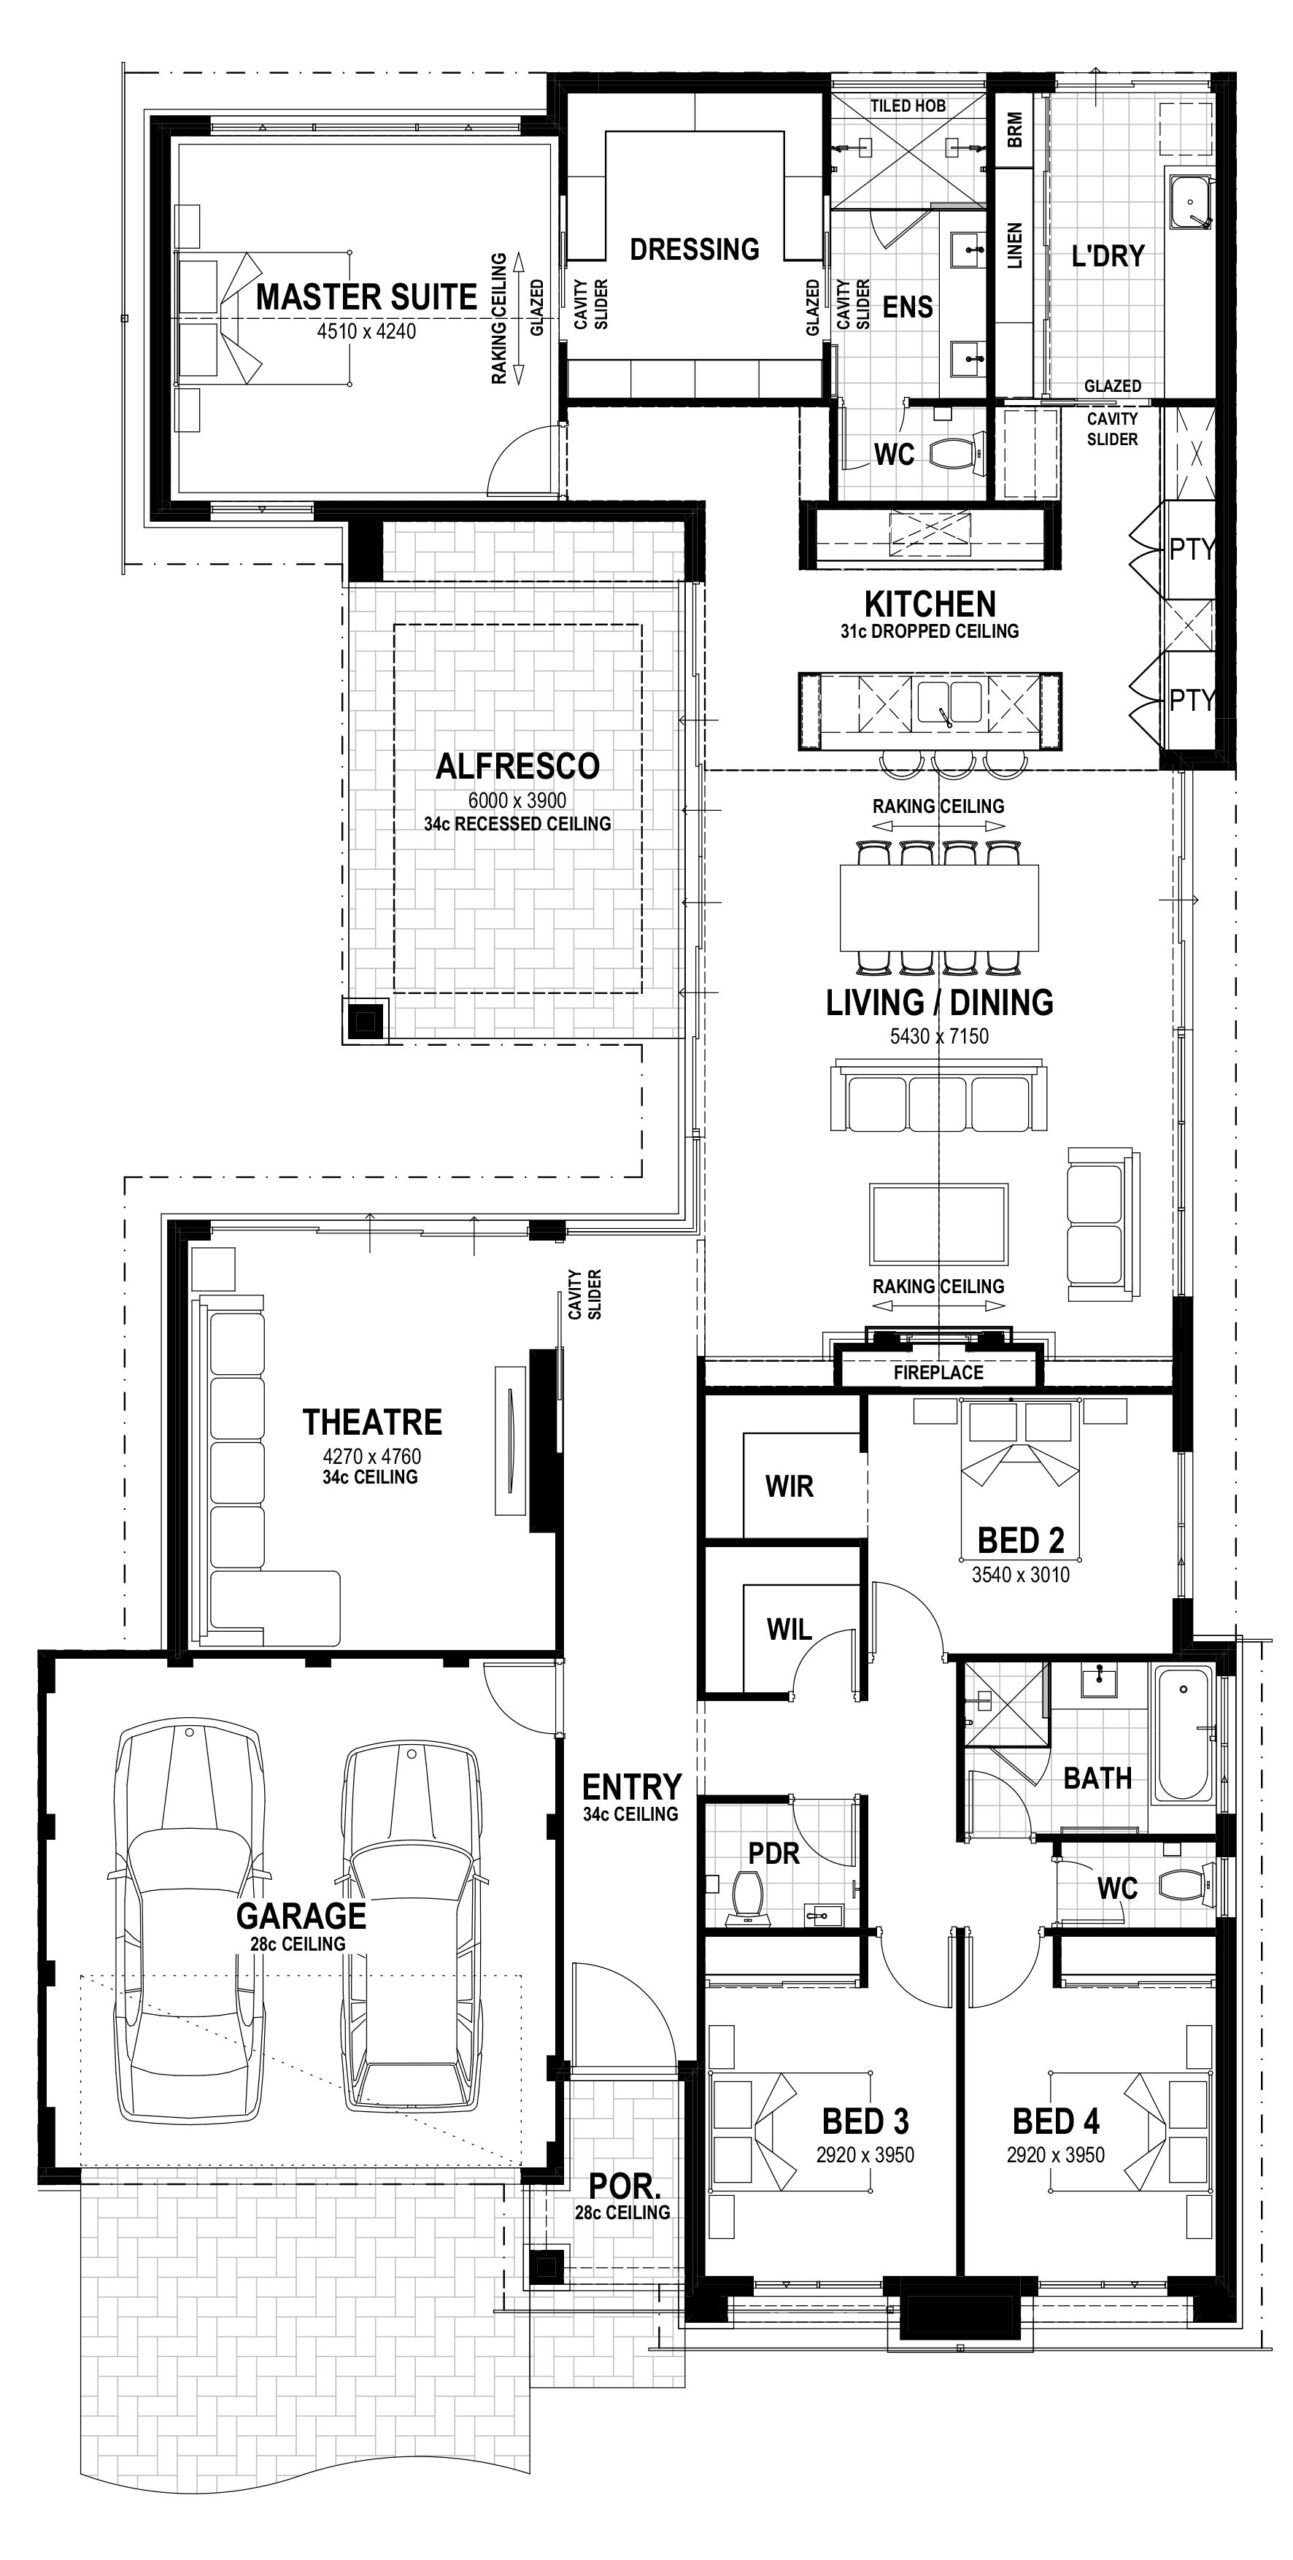 Free Floor Plans For Building A House | Floor Plan Design, Home Design Floor Plans, House Flooring